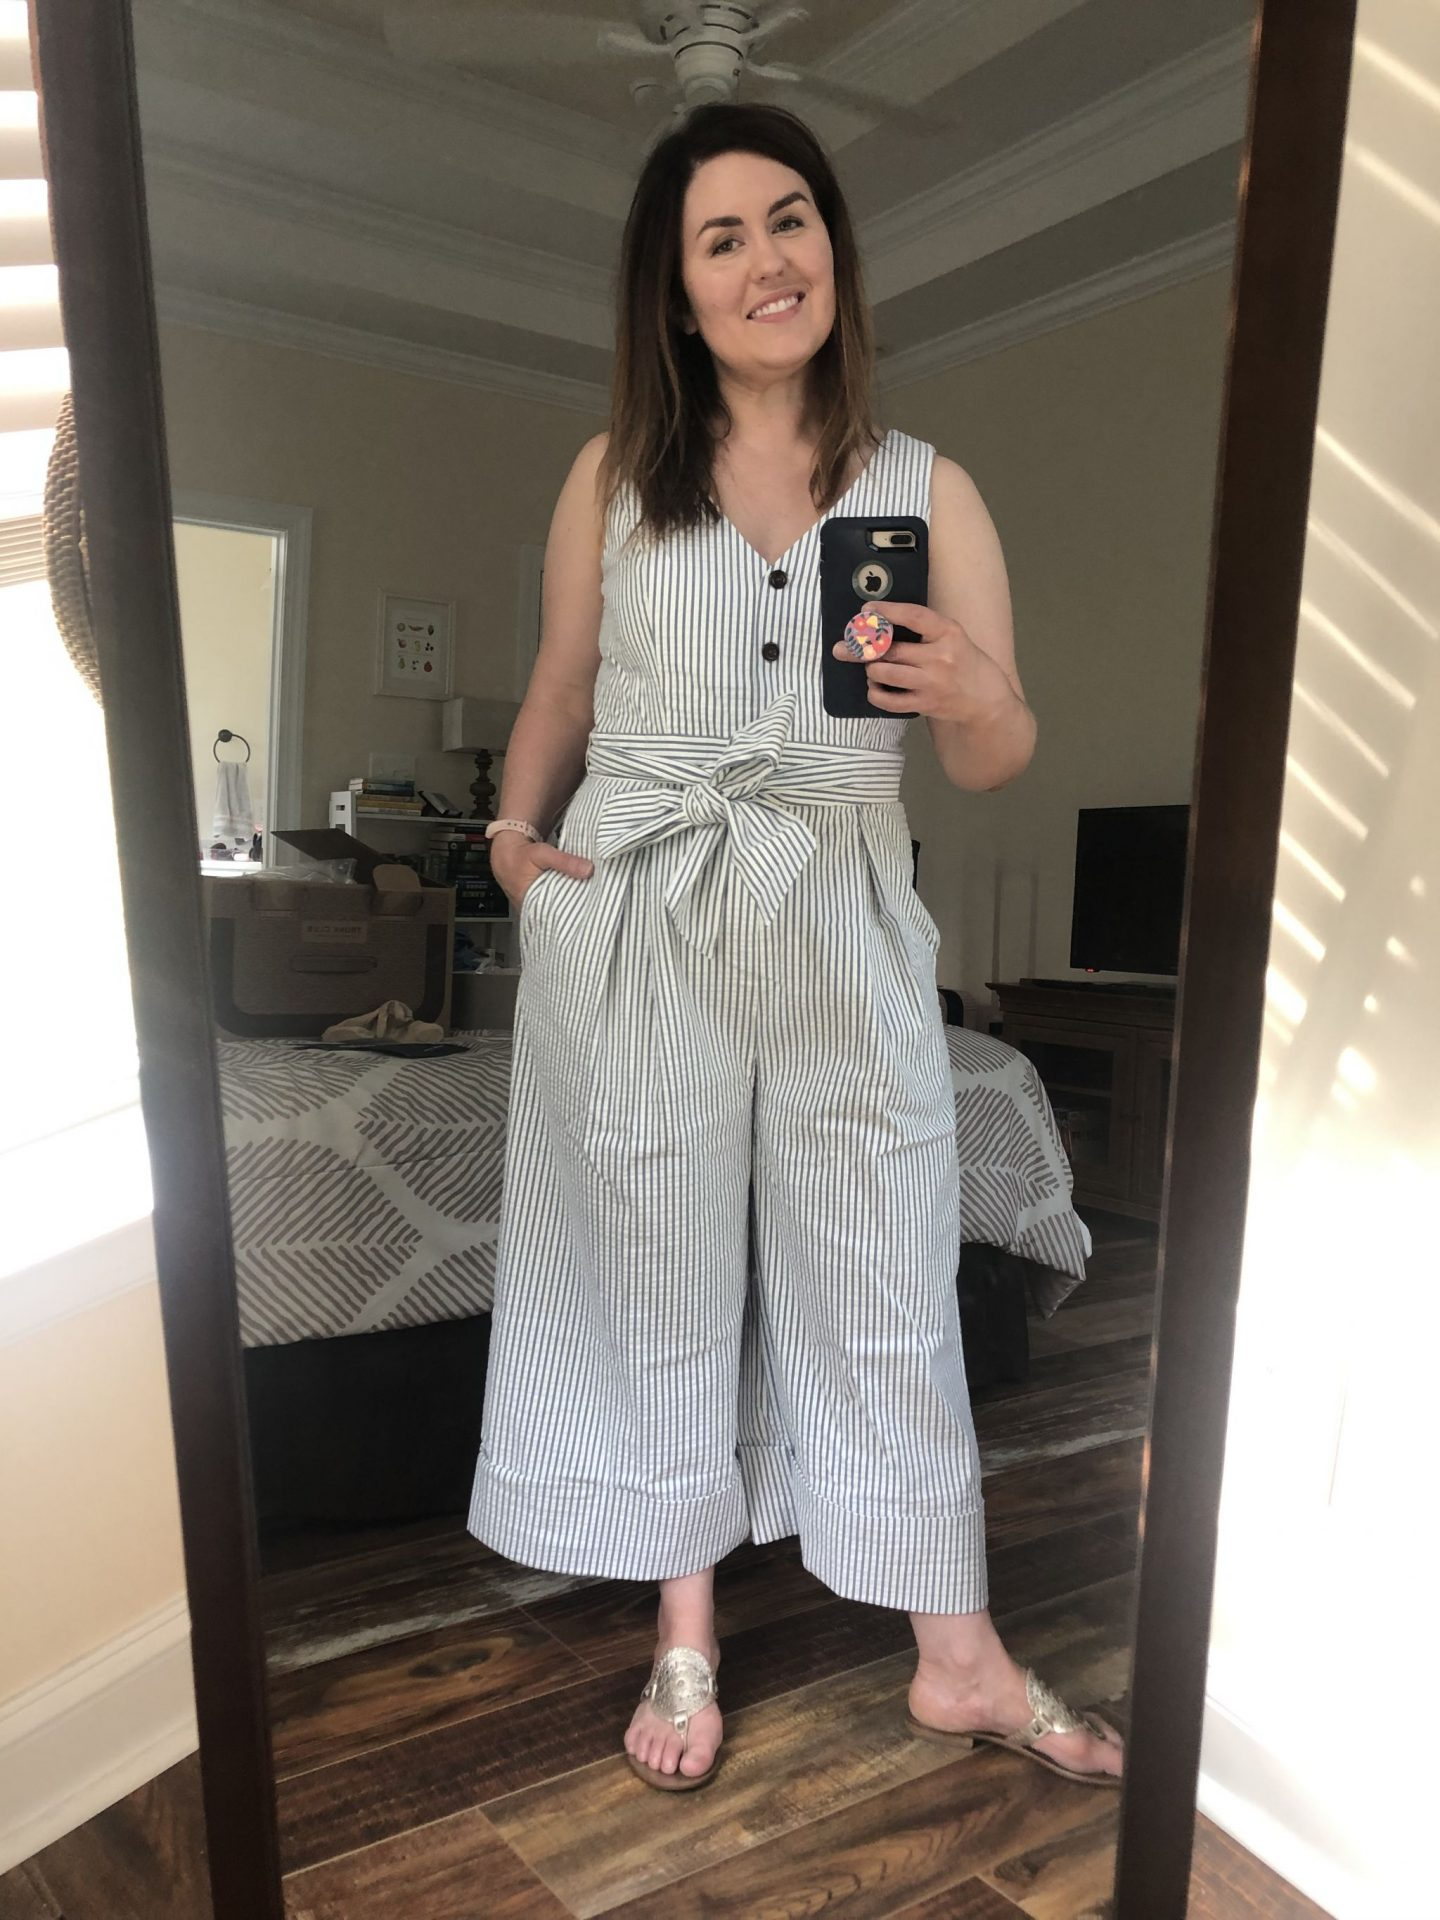 NC blogger Rebecca Lately is sharing her first Trunk Club review on her blog. If you love styling services, this is the one for you!